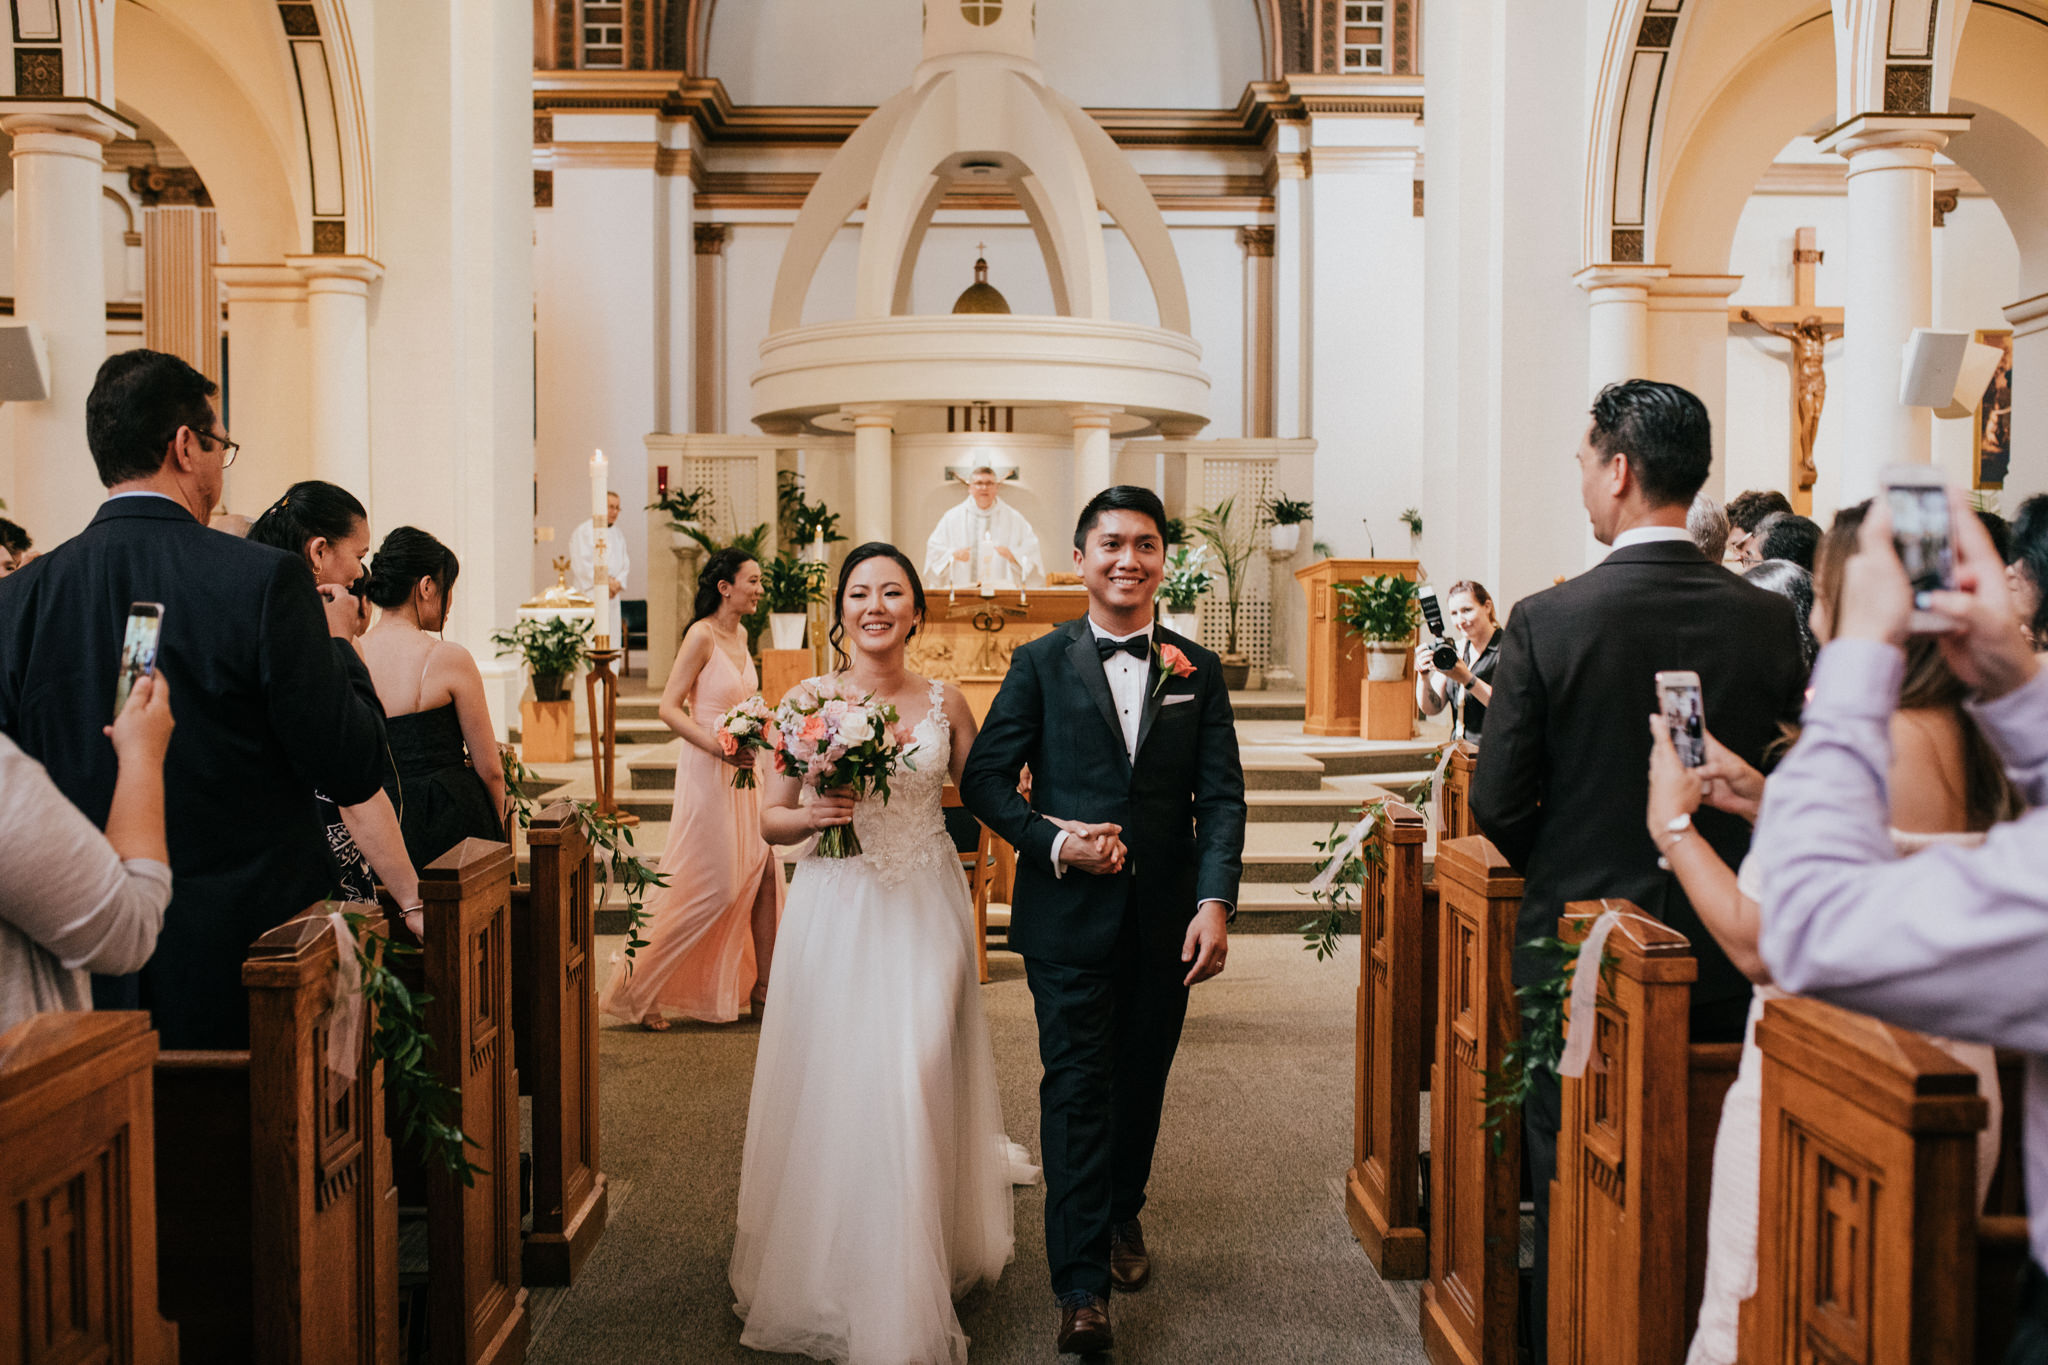 bride and groom walking down the aisle during recessional